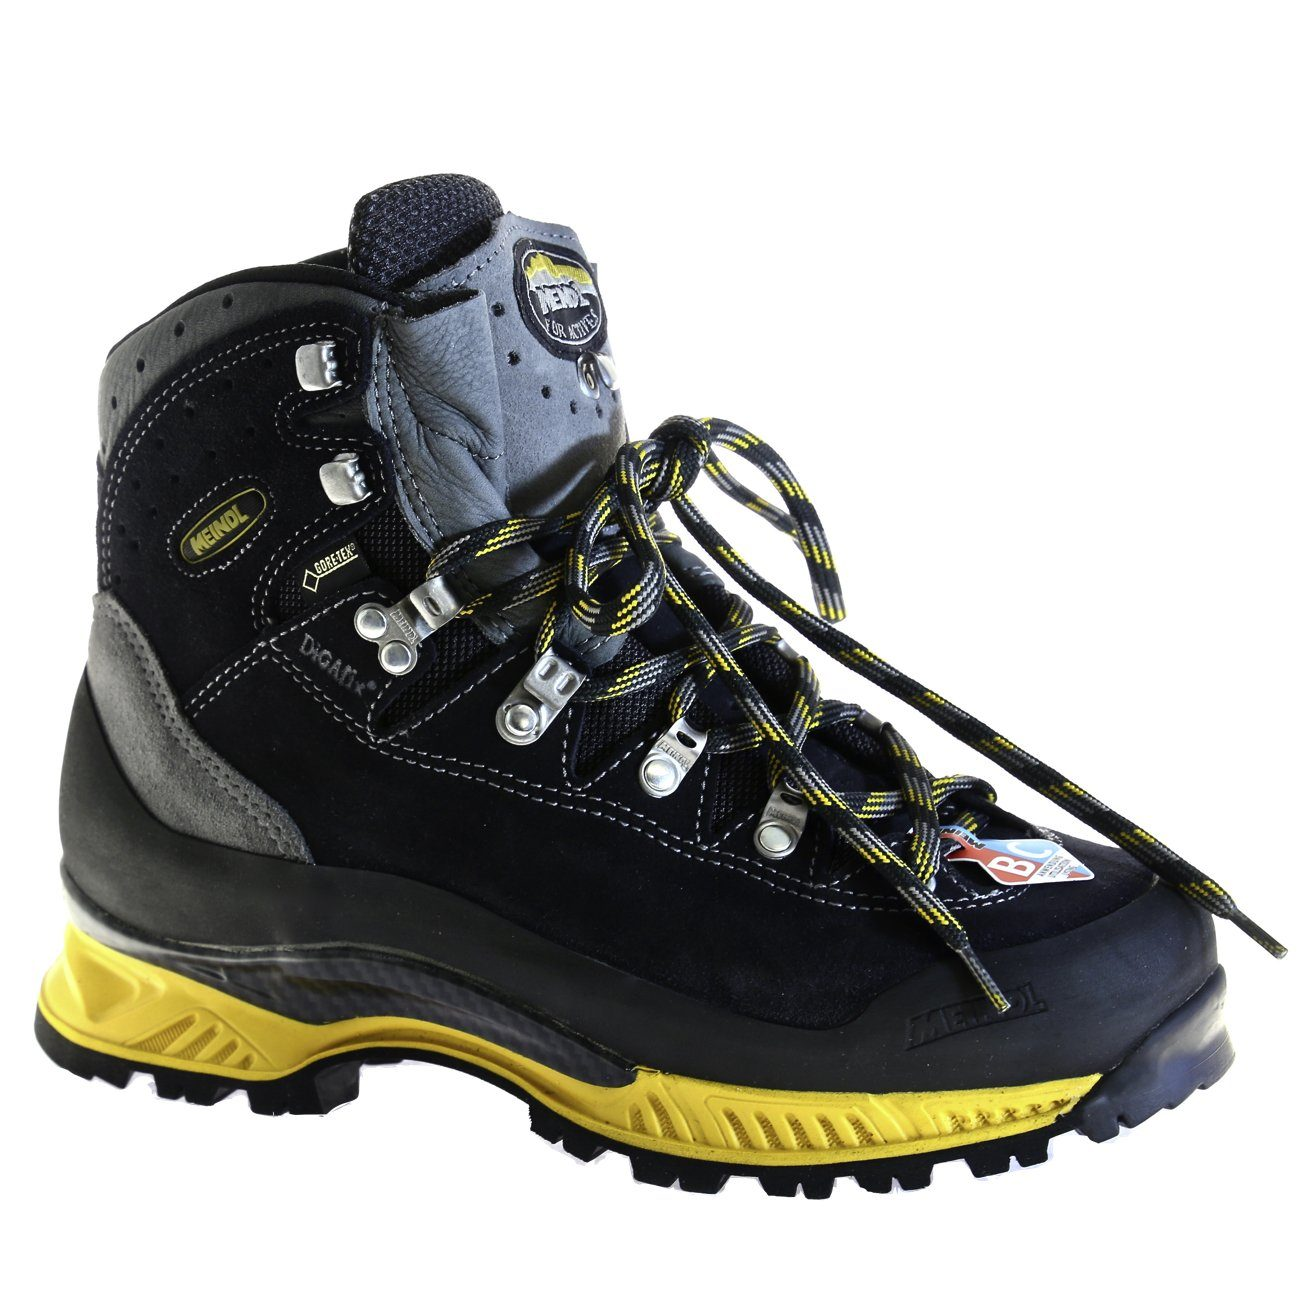 Meindl, Air Revolution 5.3 Hiking Boots Meindl